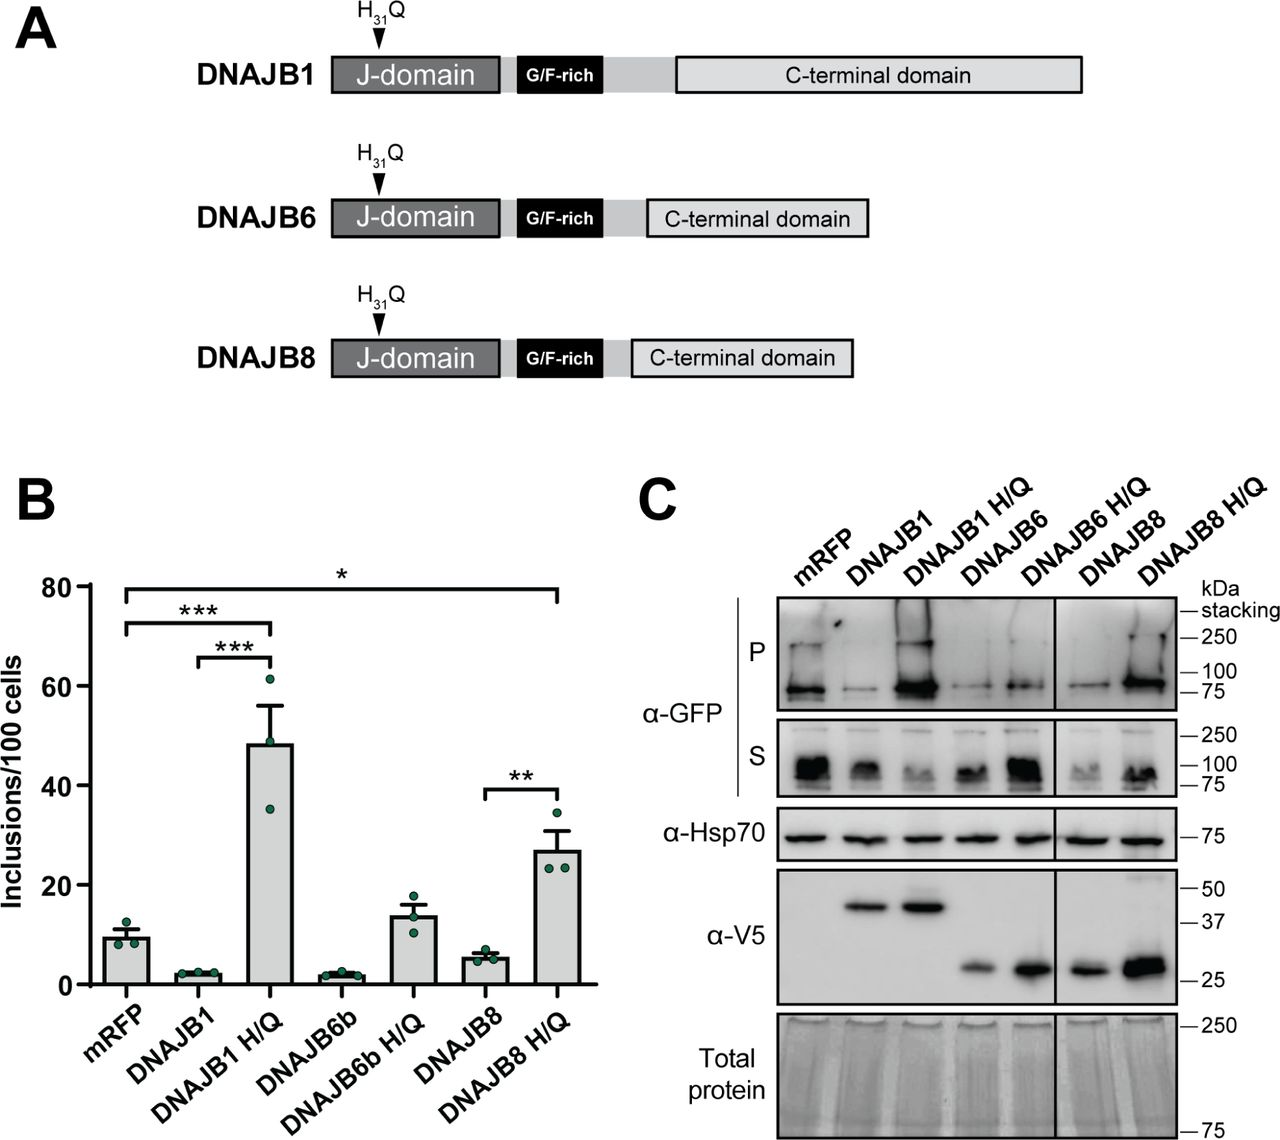 Interaction with Hsp70 is required for DNAJBs to suppress Fluc DM aggregation. (A) Schematic overview of DNAJB proteins identifying location of mutation within the J-domain, in which the histidine residue has been substituted for a glutamine (termed H/Q) at amino acid position 31 within the HPD (Hsp70-interacting) motif. HEK293 cells were co-transfected to express Fluc DM -EGFP and mRFP (as a negative control), DNAJB1, DNAJB6, DNAJB8 or their H/Q variants. Cells were analysed 48 h post-transfection by (B) quantitative flow cytometry or (C) NP-40 cell fractionation followed by immunoblotting. Data in (B) is presented as the mean ± S.E.M (n=3) of the number of inclusions per 100 cells. Significant differences between group means in the data were determined using a one-way ANOVA (P